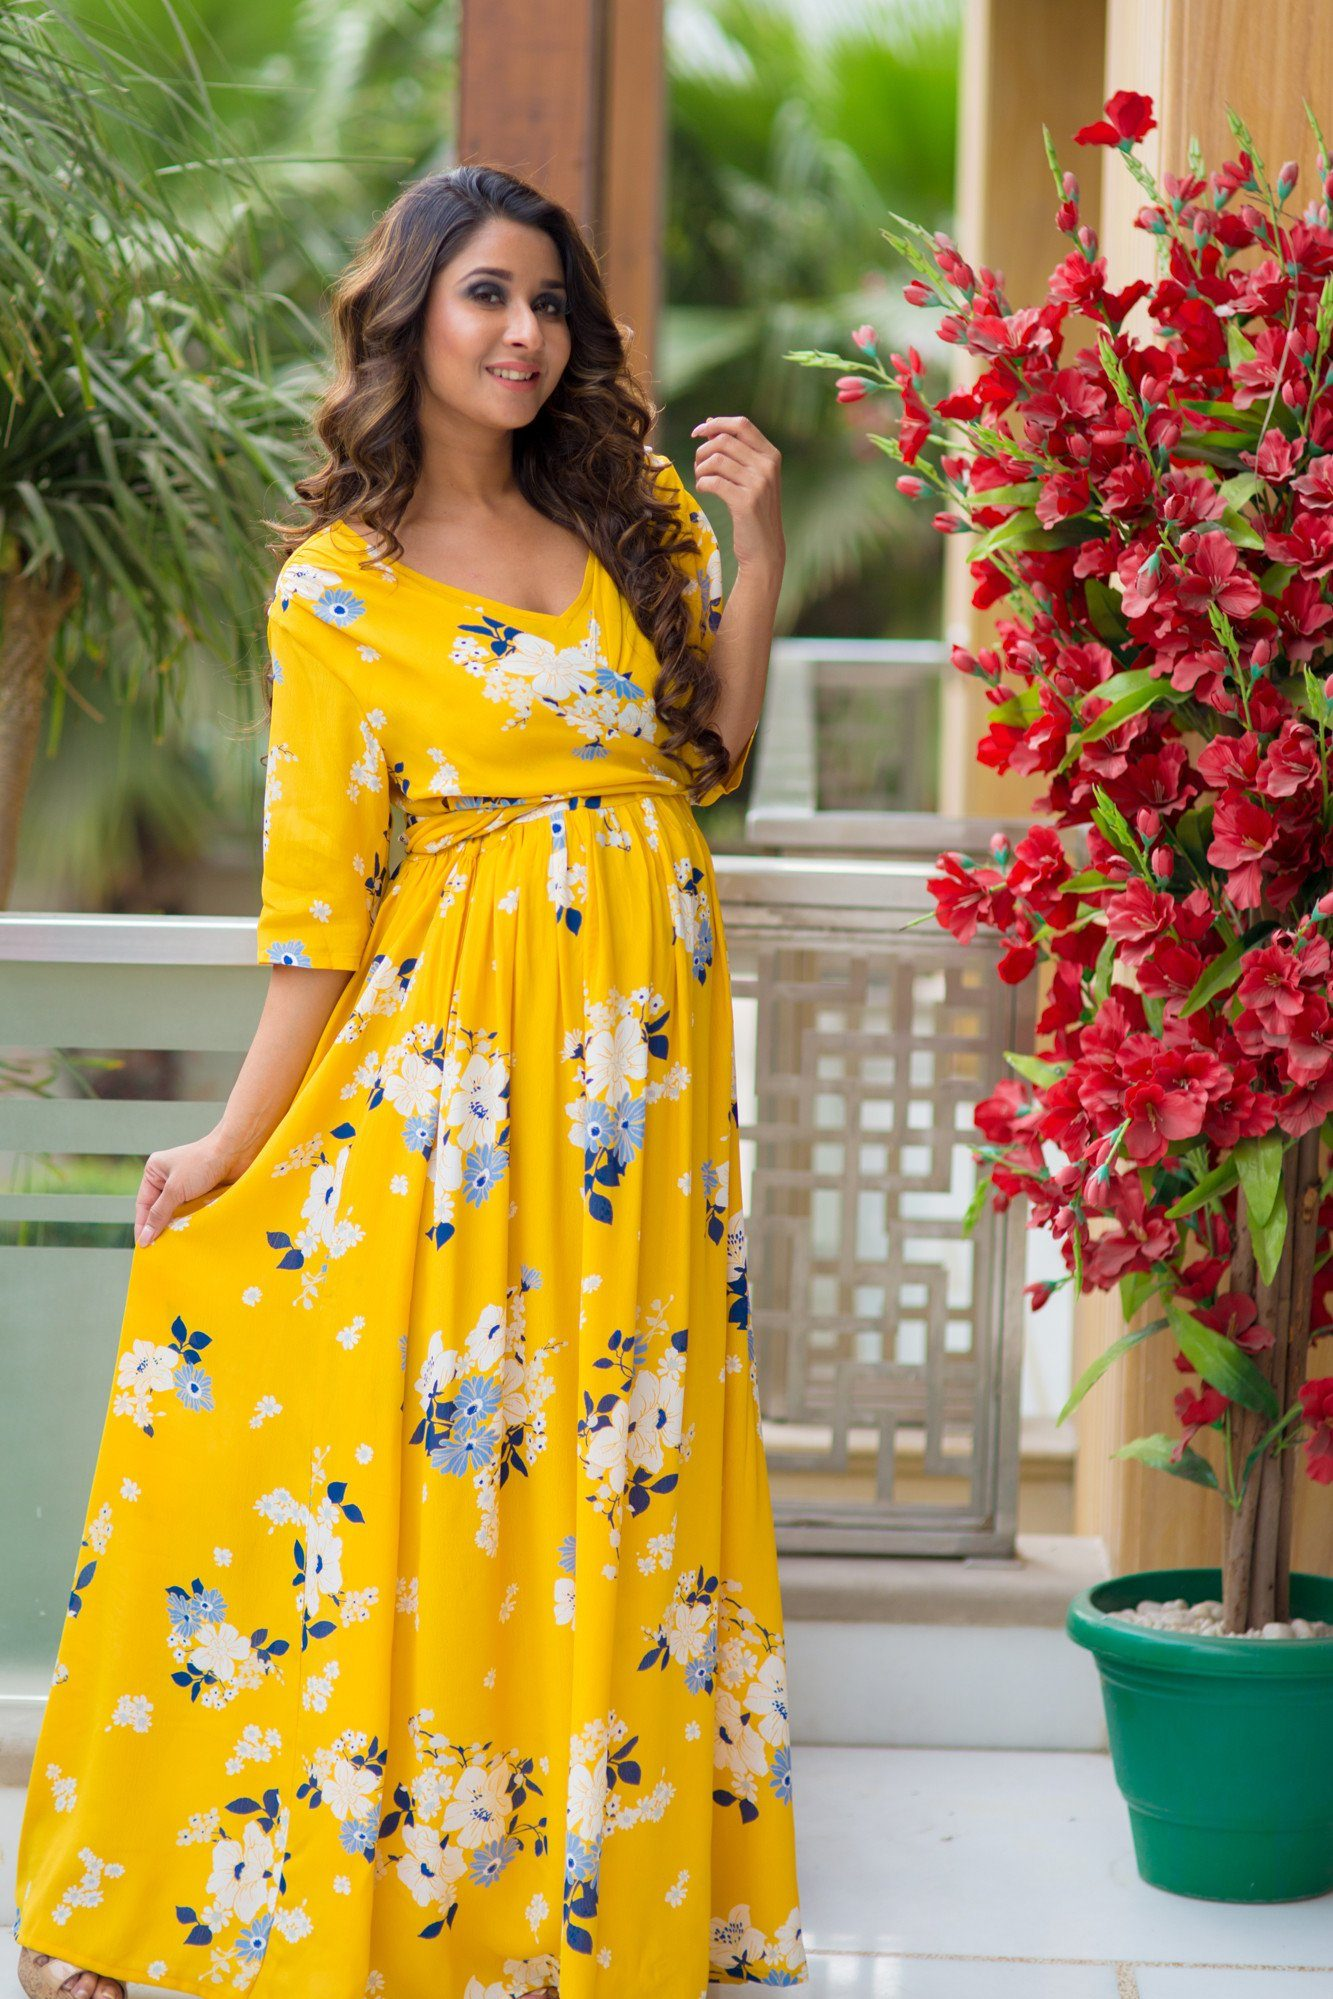 f9c350e6da Maternity Dress For Photoshoot Online India - Data Dynamic AG